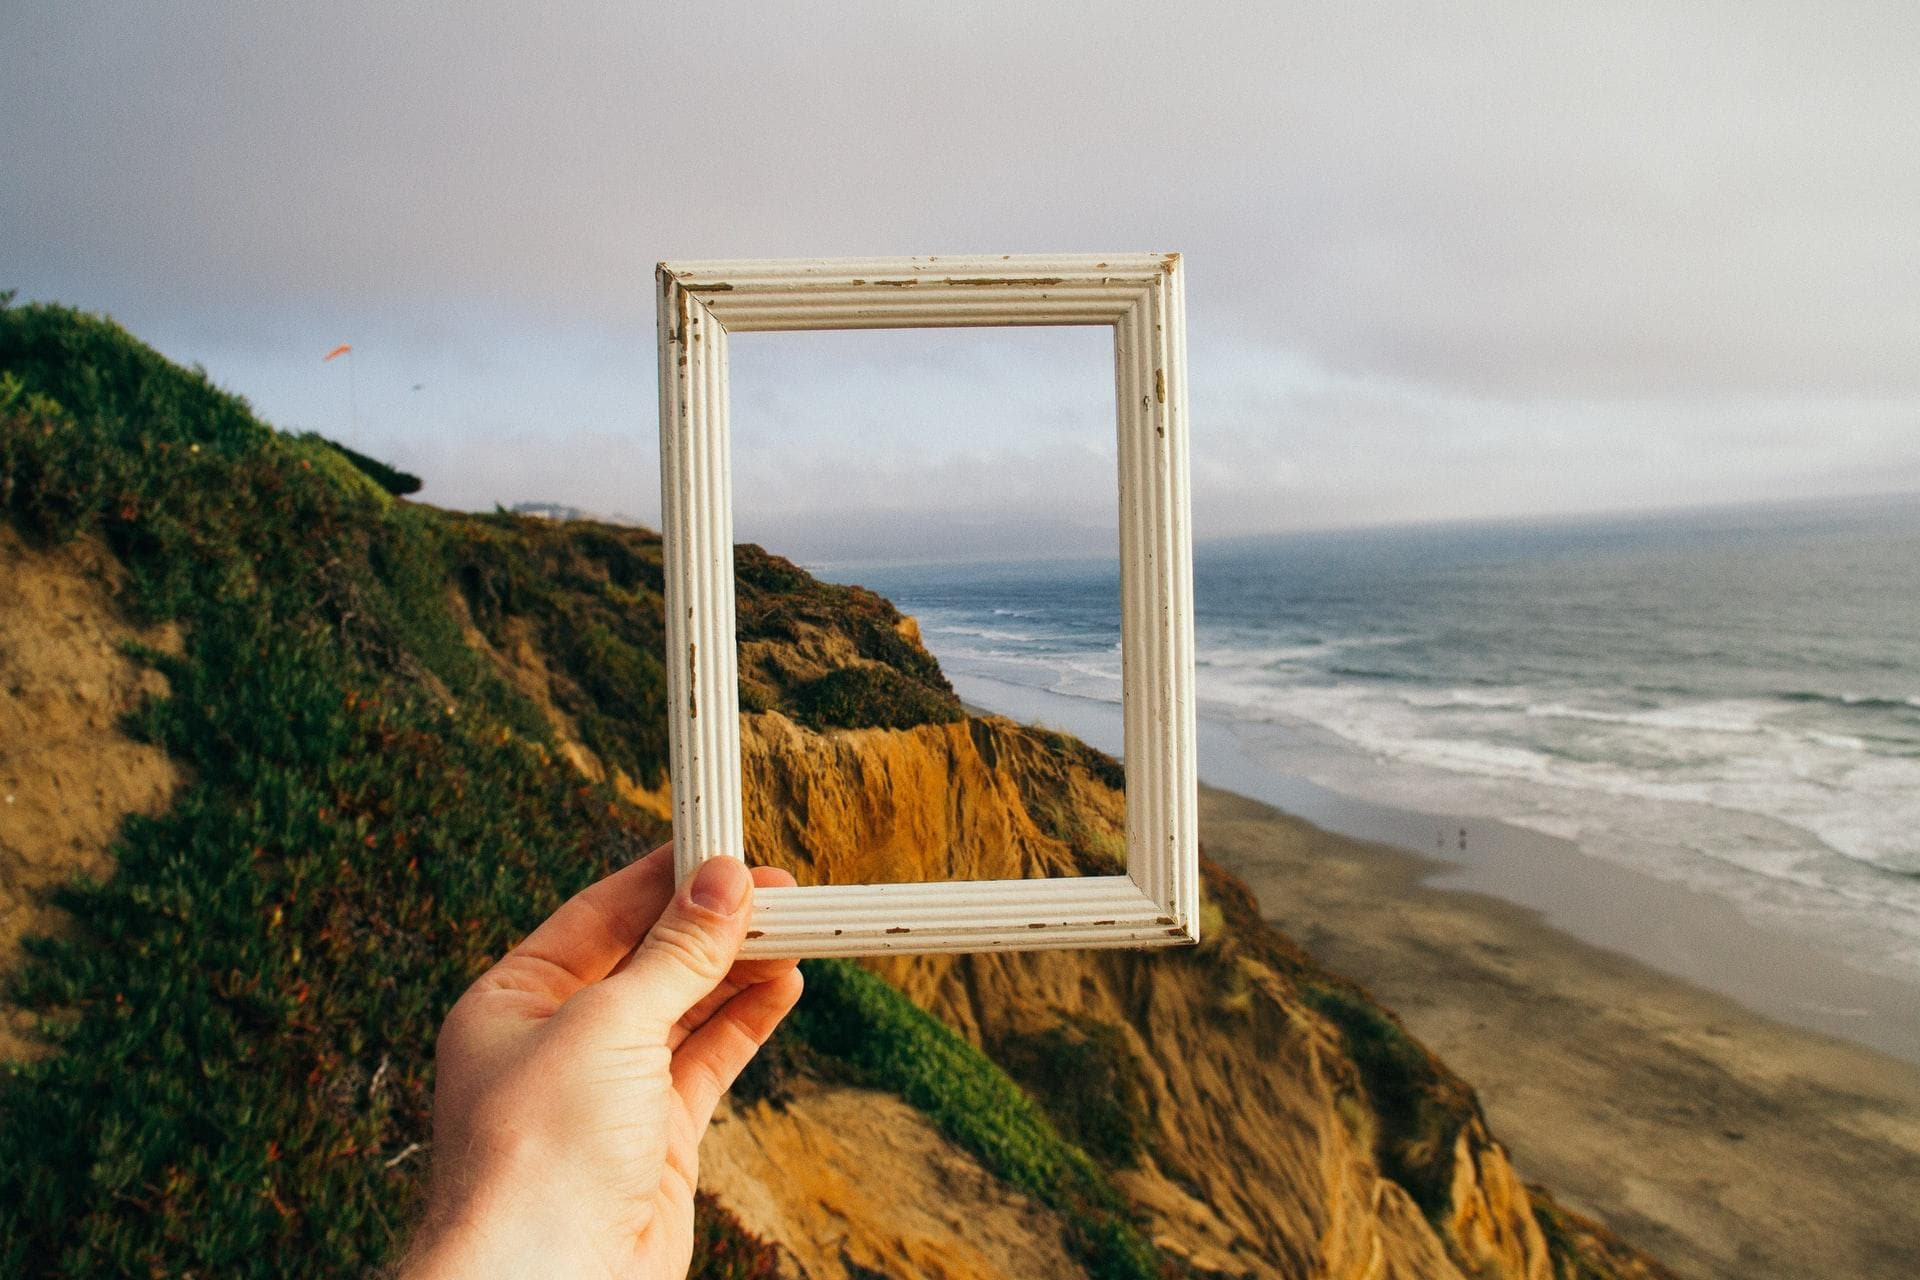 A white picture frame in front of a landscape with a beach.